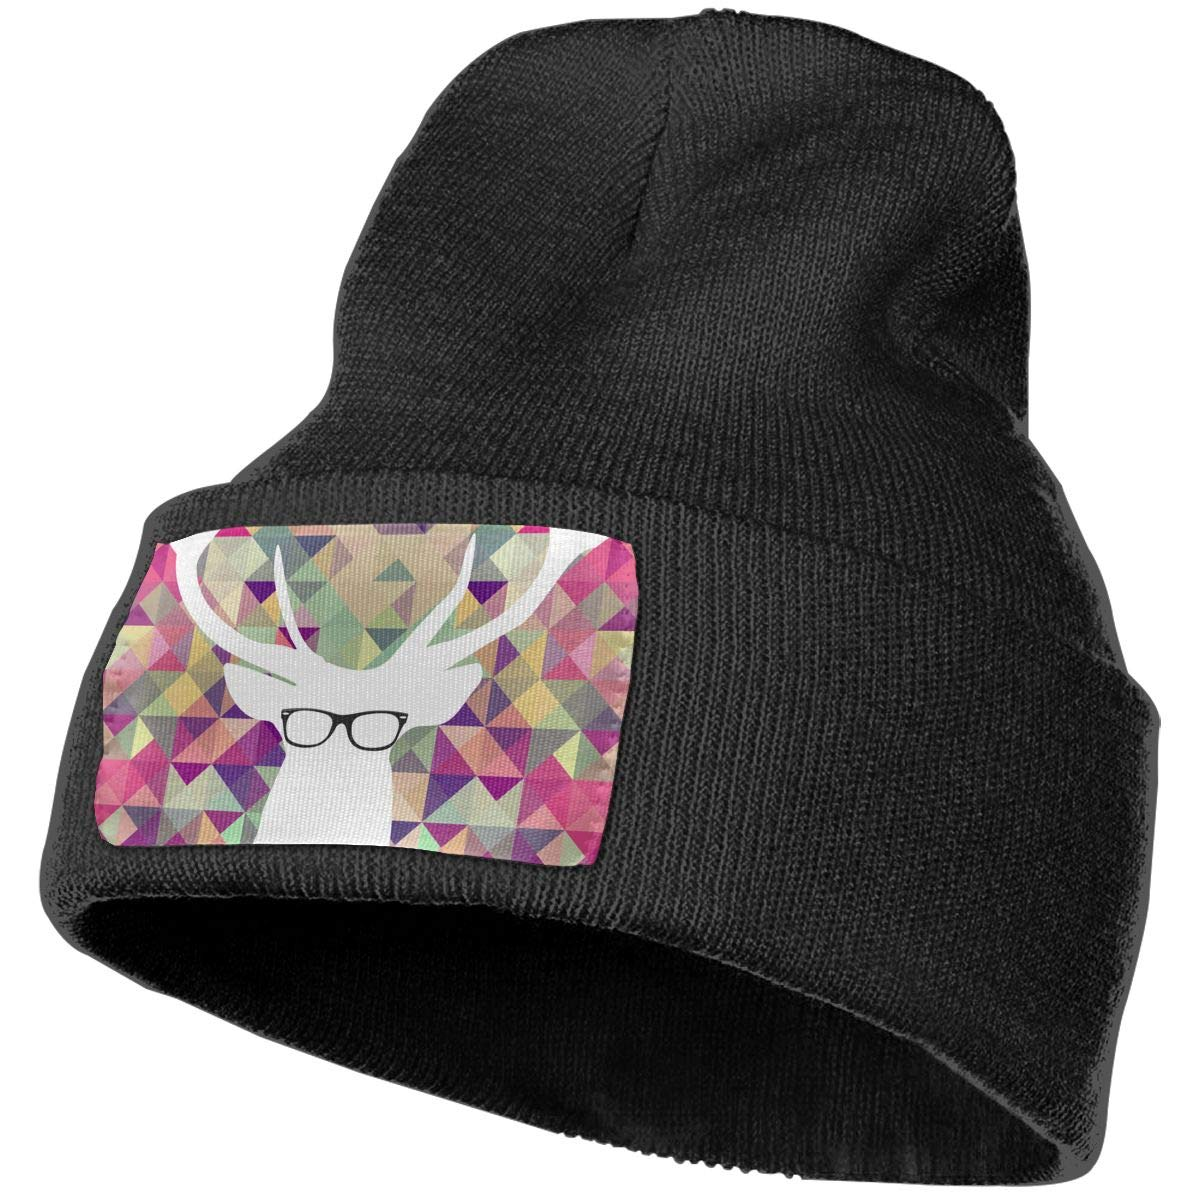 36ab02c641 Amazon.com  Anonymous Guest Knit Hat Cap A Deer Wearing Glasses Skull Cap   Clothing